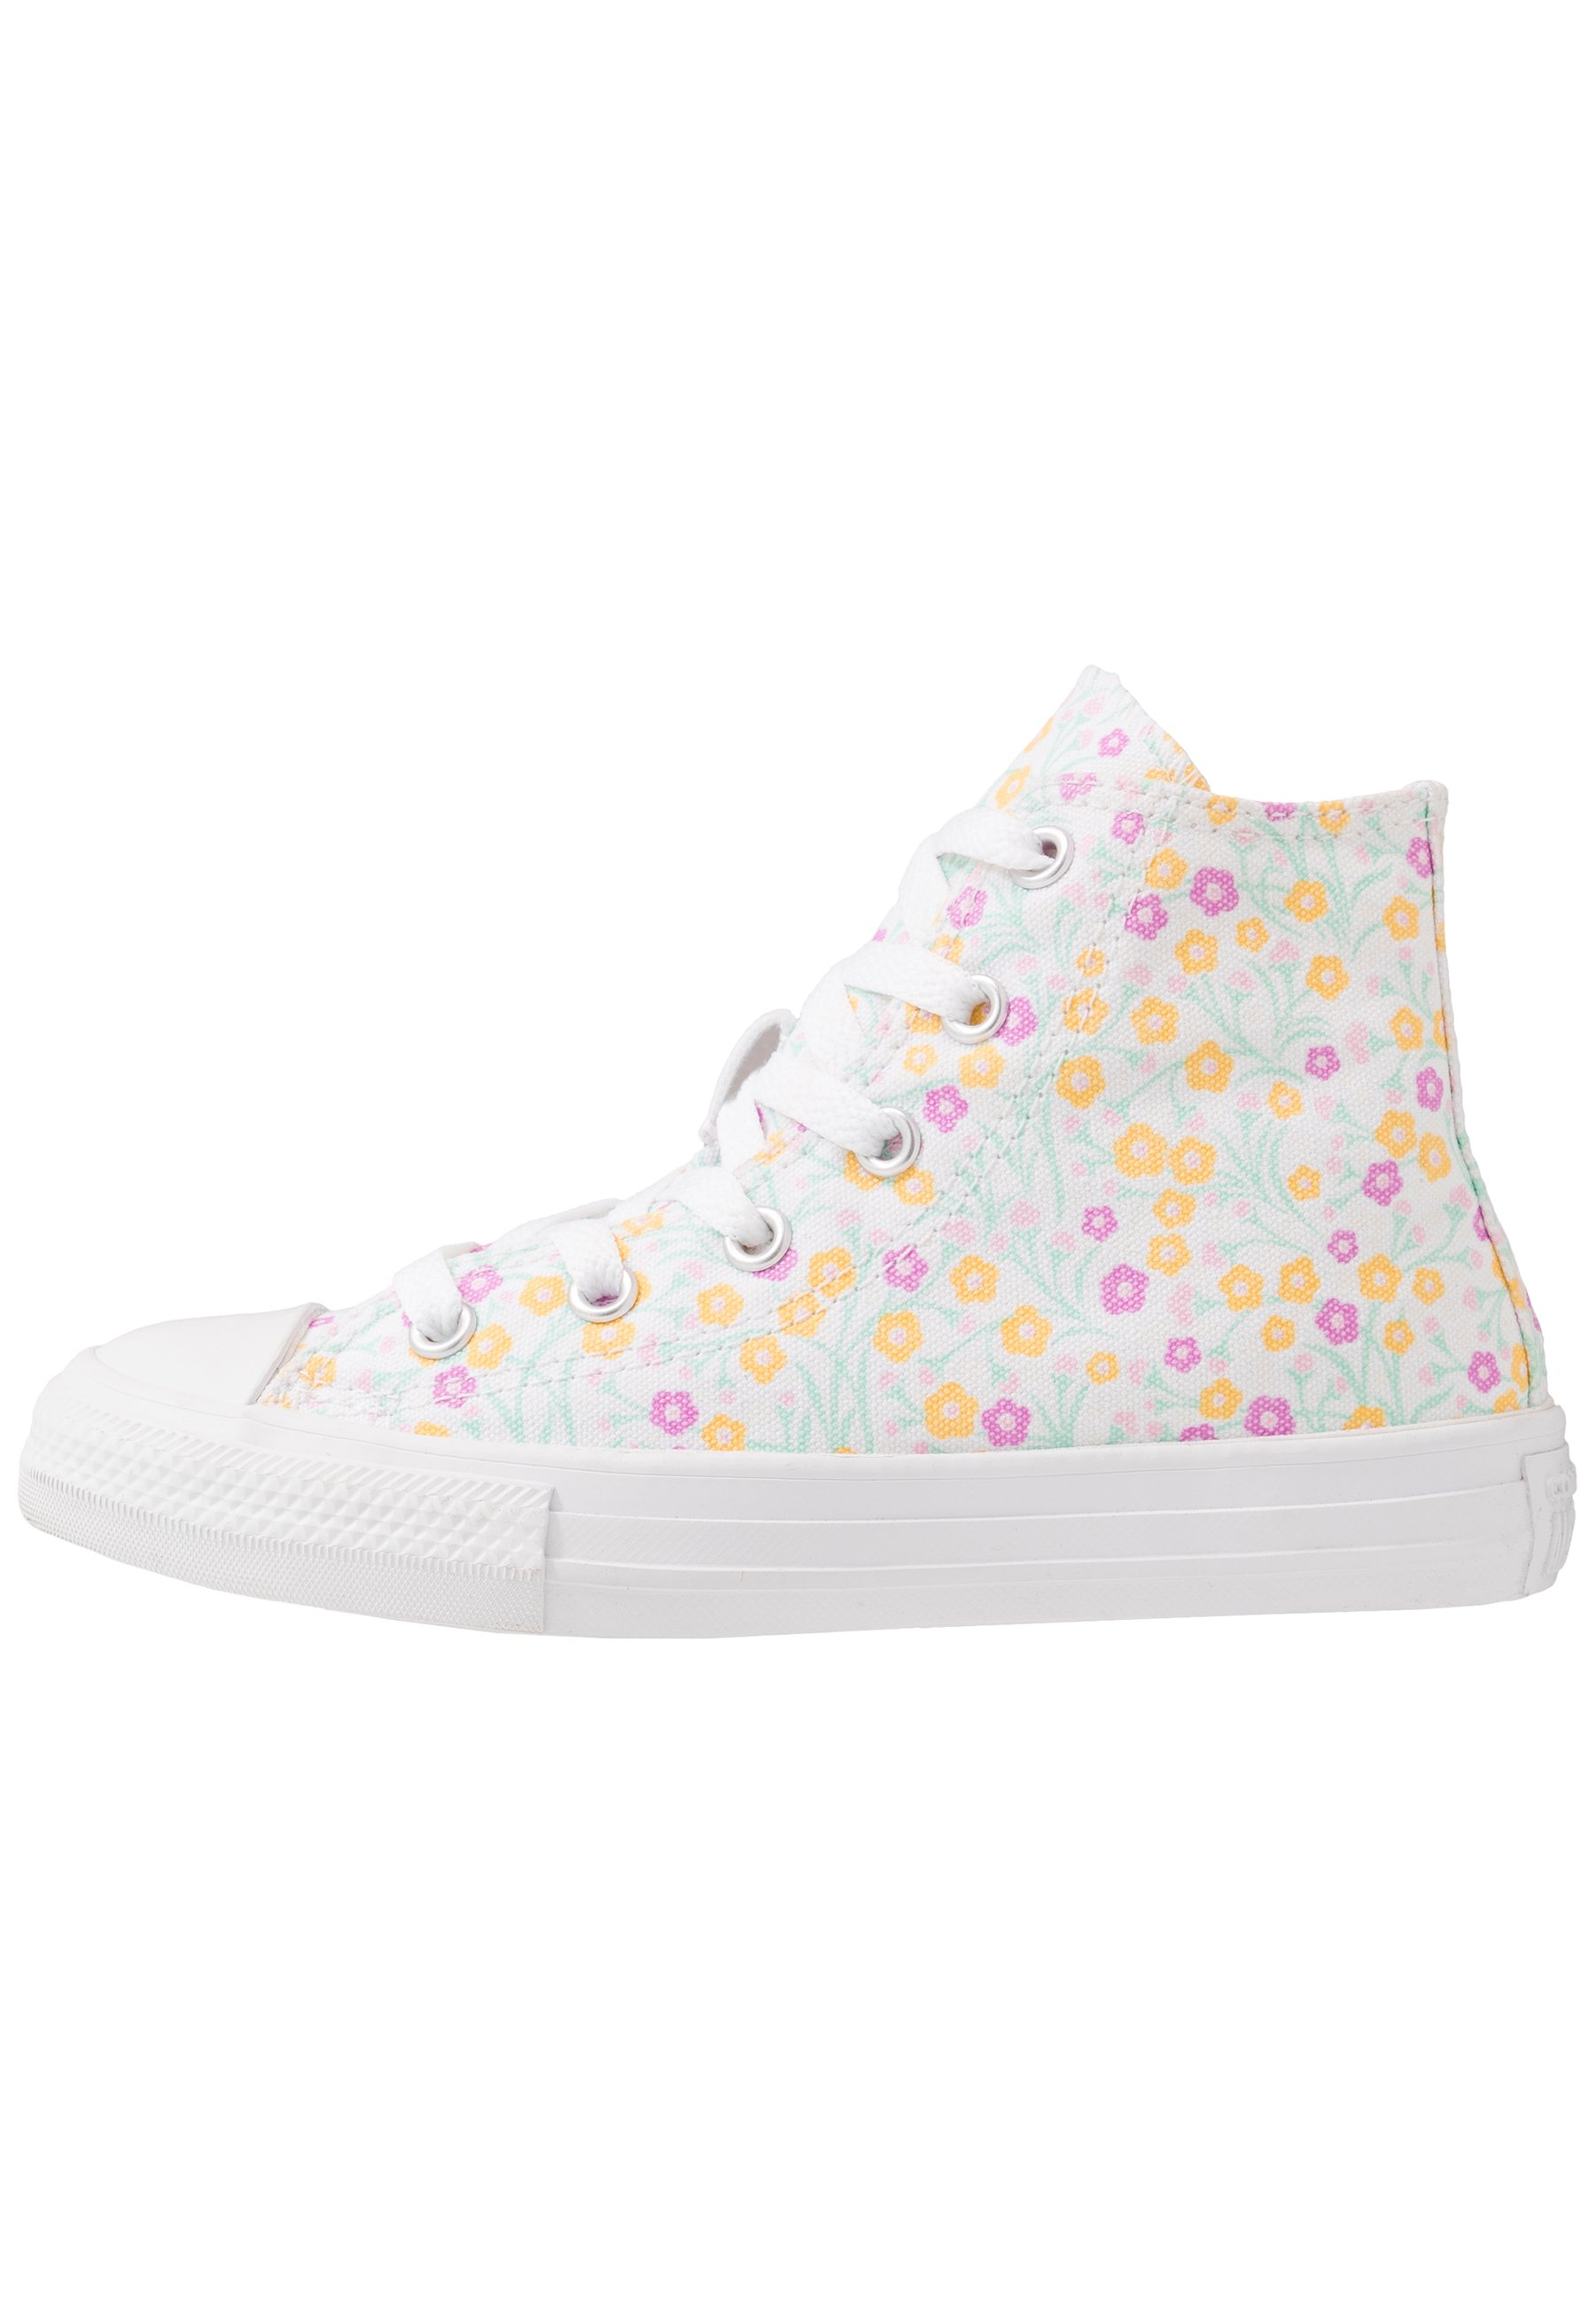 CHUCK TAYLOR ALL STAR FLORAL Sneakers alte whitetopaz goldpeony pink